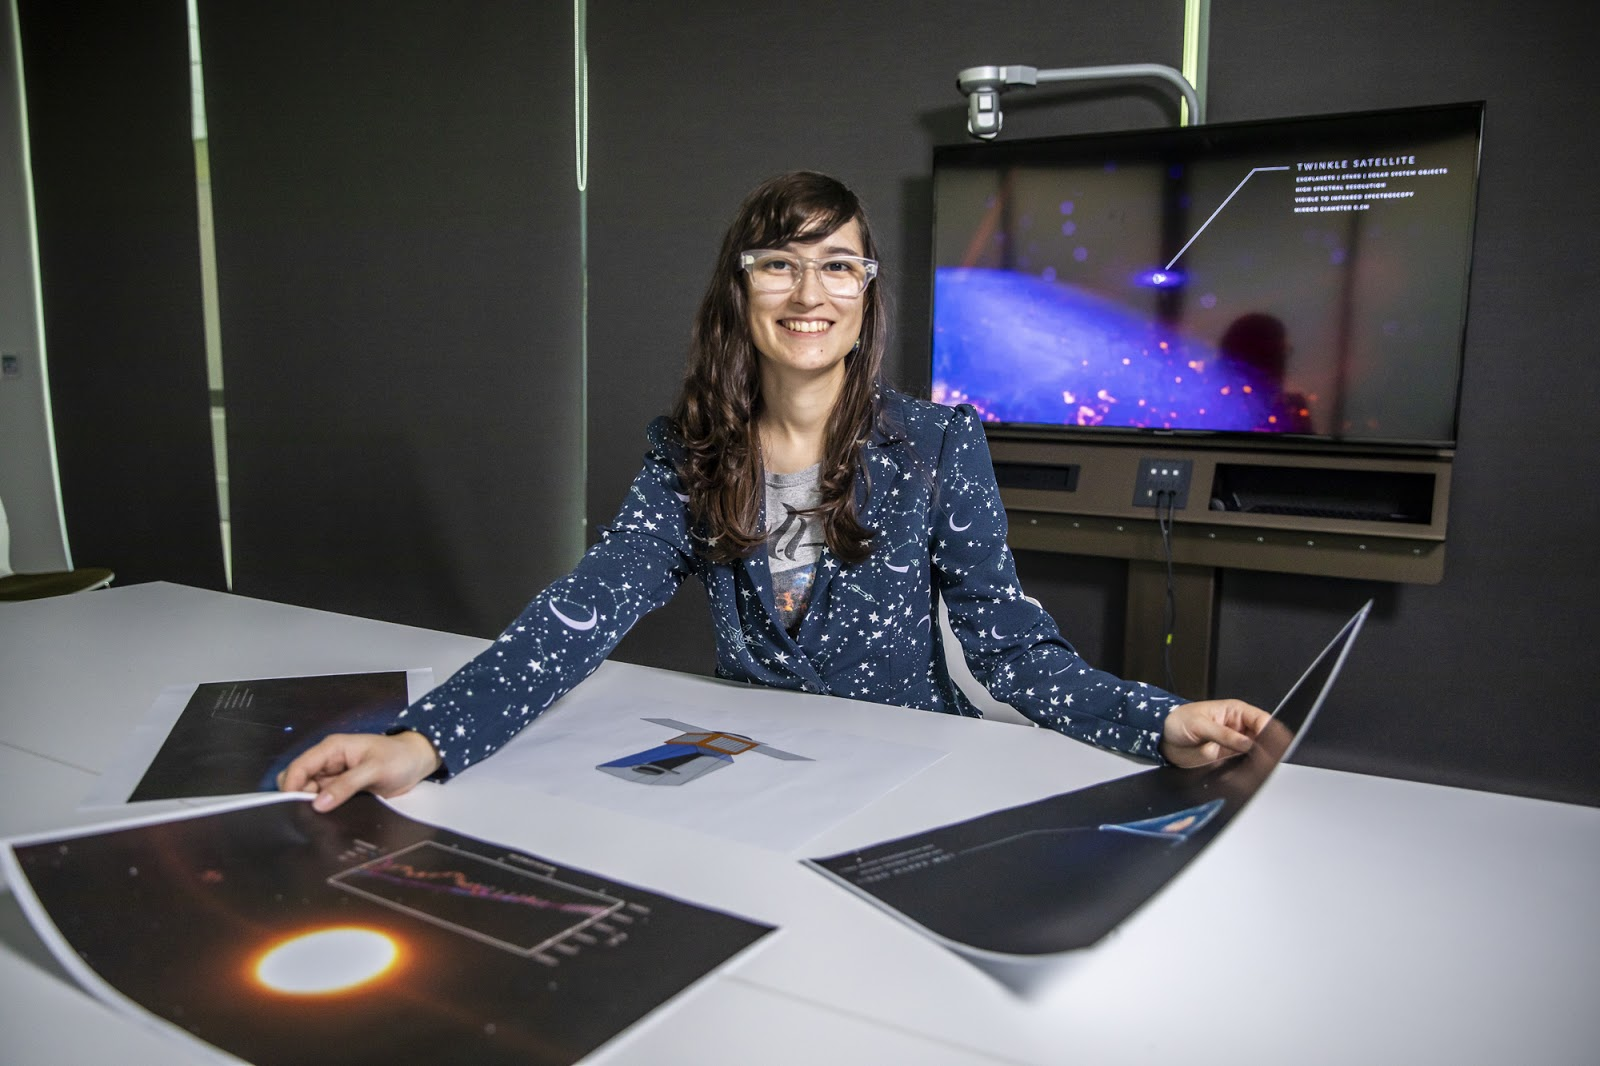 PhD student Nataliea Lowson will be play a key role in Australia's work with the Twinkle space telescope